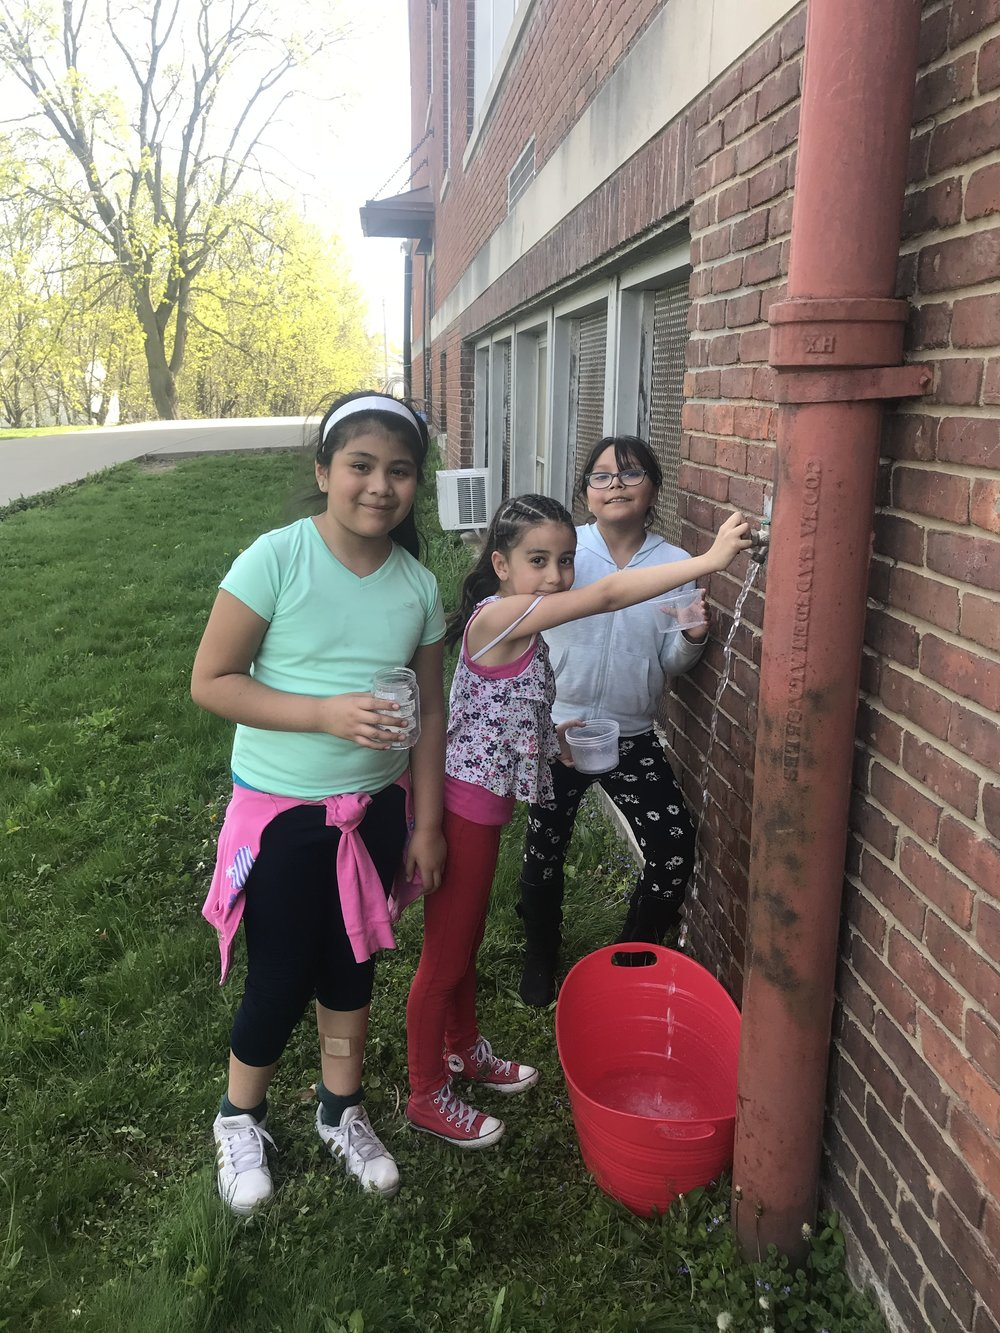 Morse students fill a bucket of water for the garden.